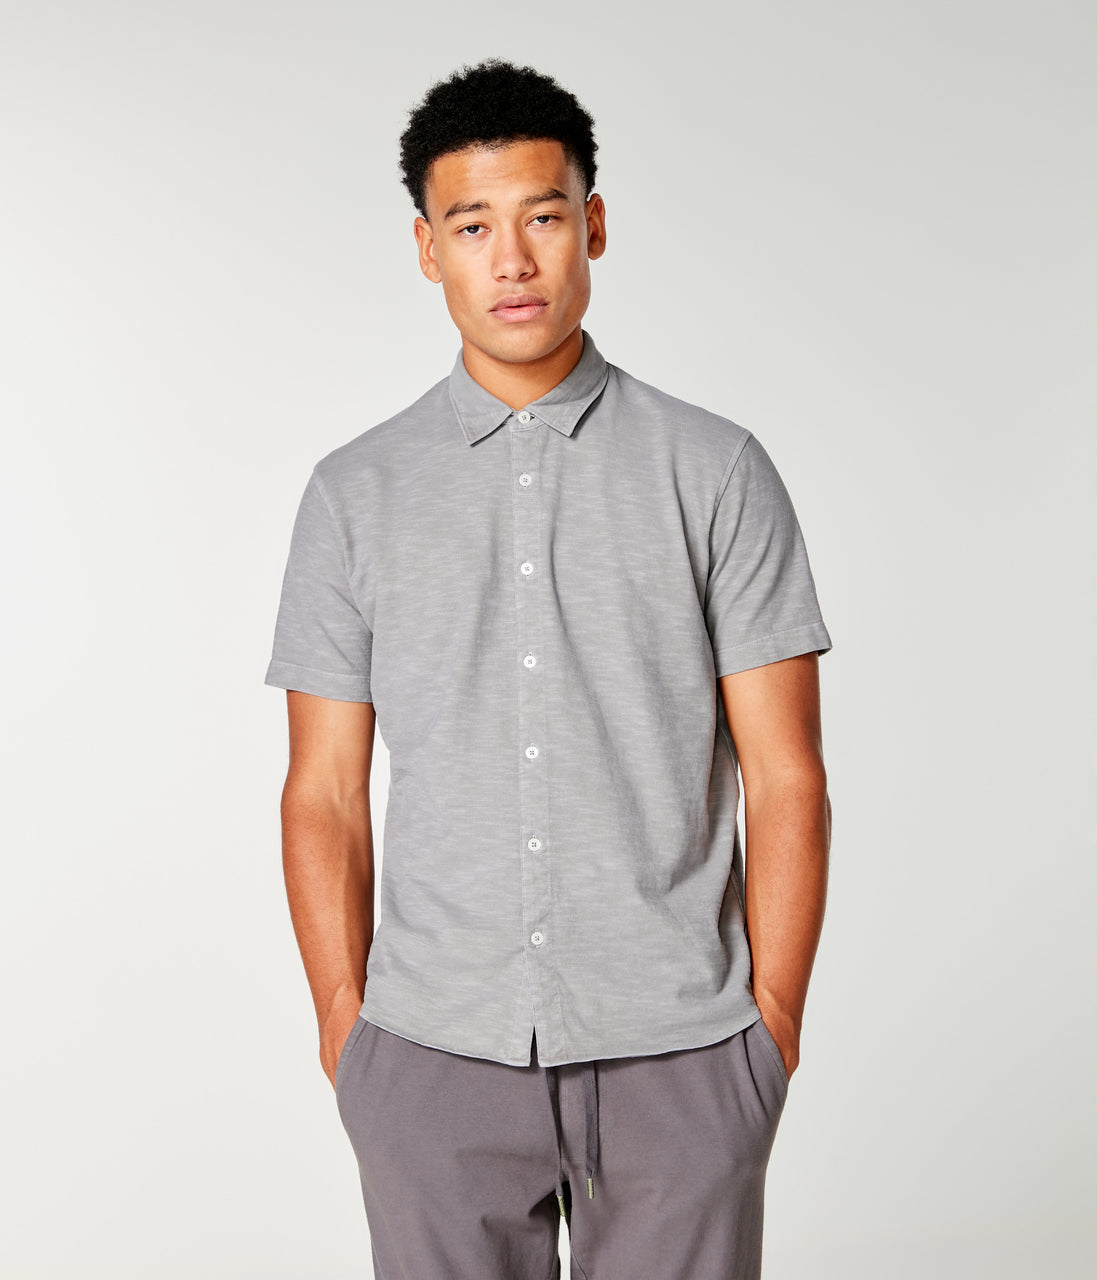 Soft Slub Jersey On-Point Shirt - Frost Grey - Good Man Brand - Slub Jersey Soft Shirt - Frost Grey